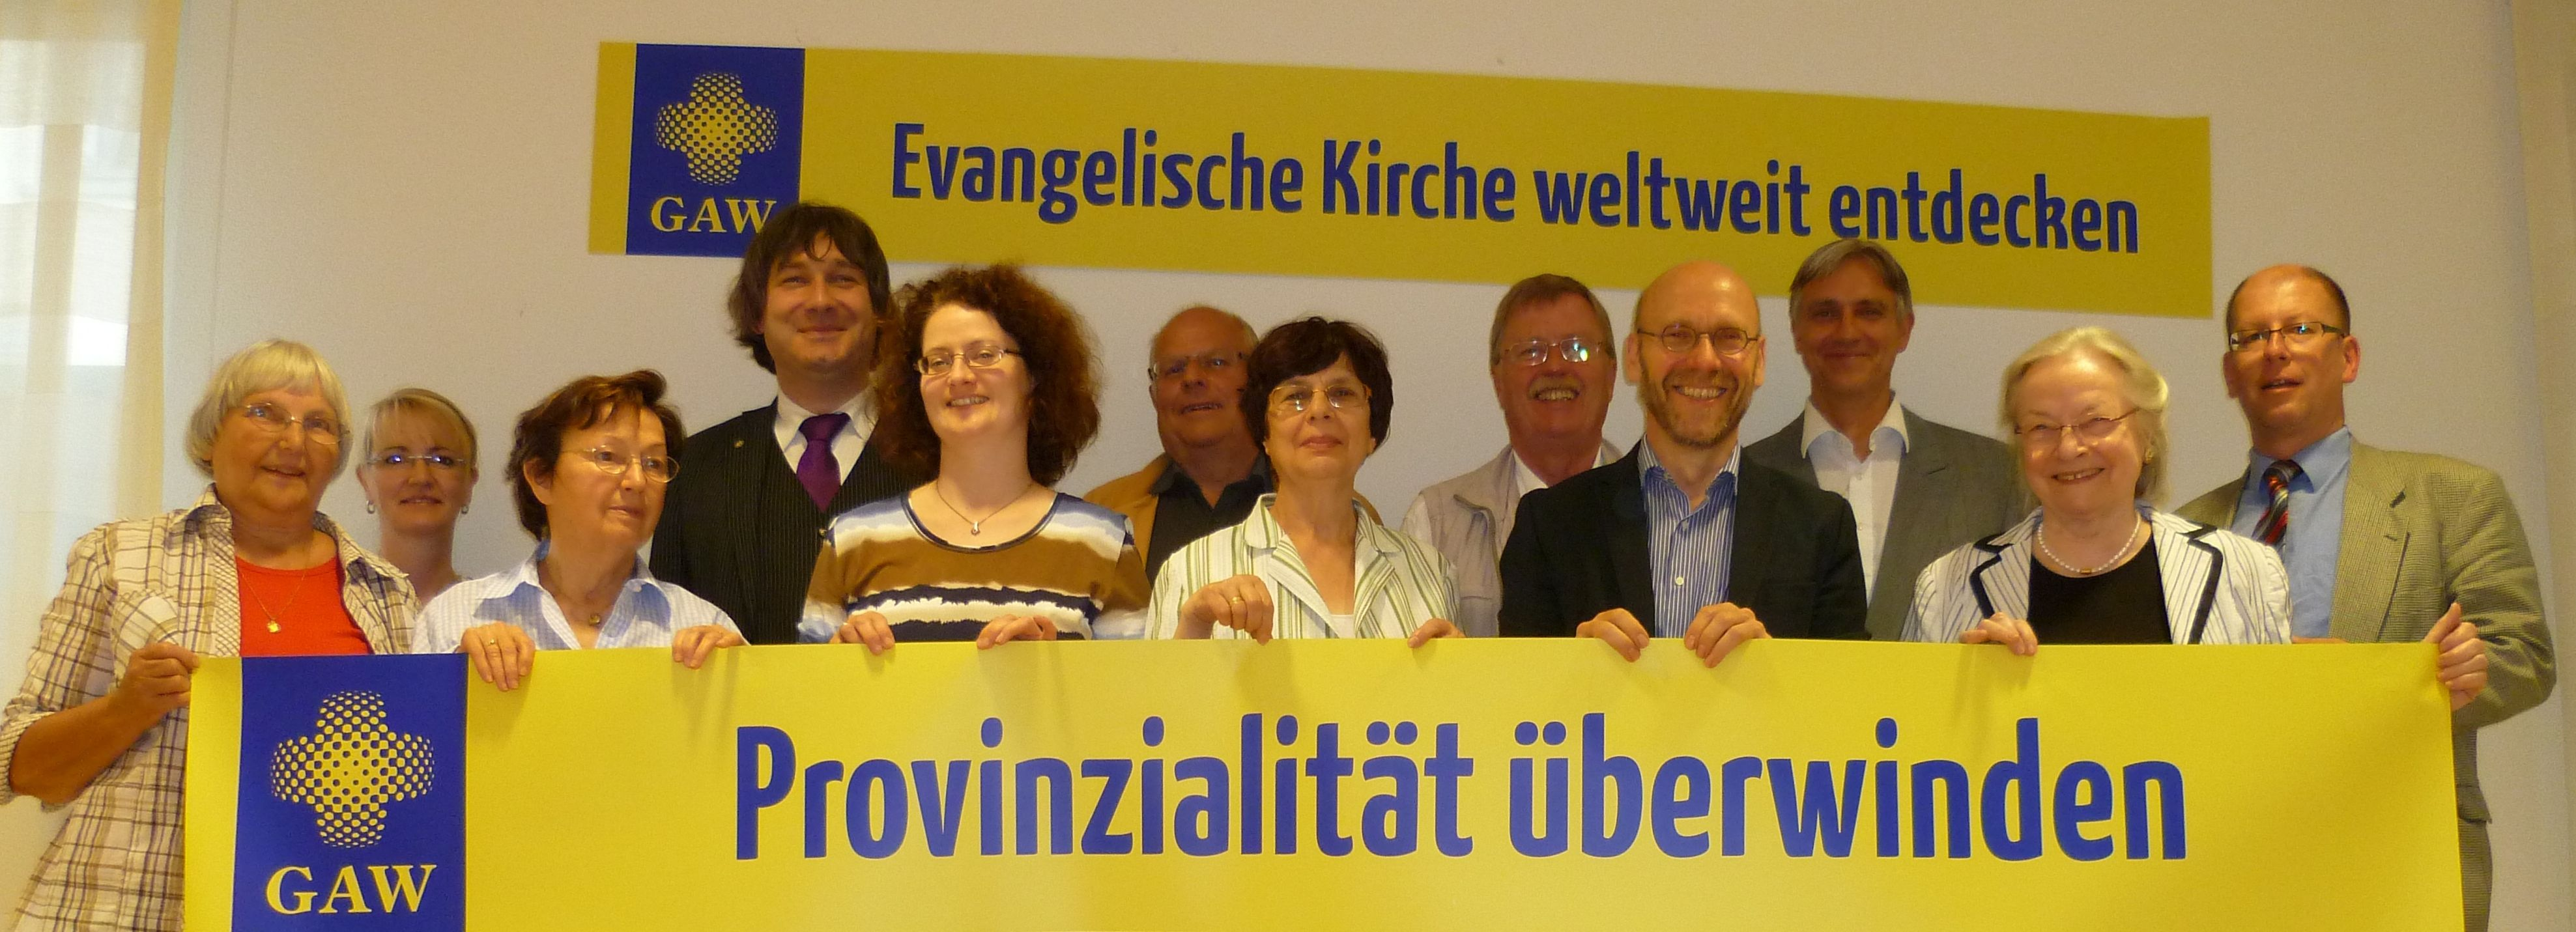 tl_files/oldenburg/Vorstand/Vorstand 2012 - Kopie.JPG